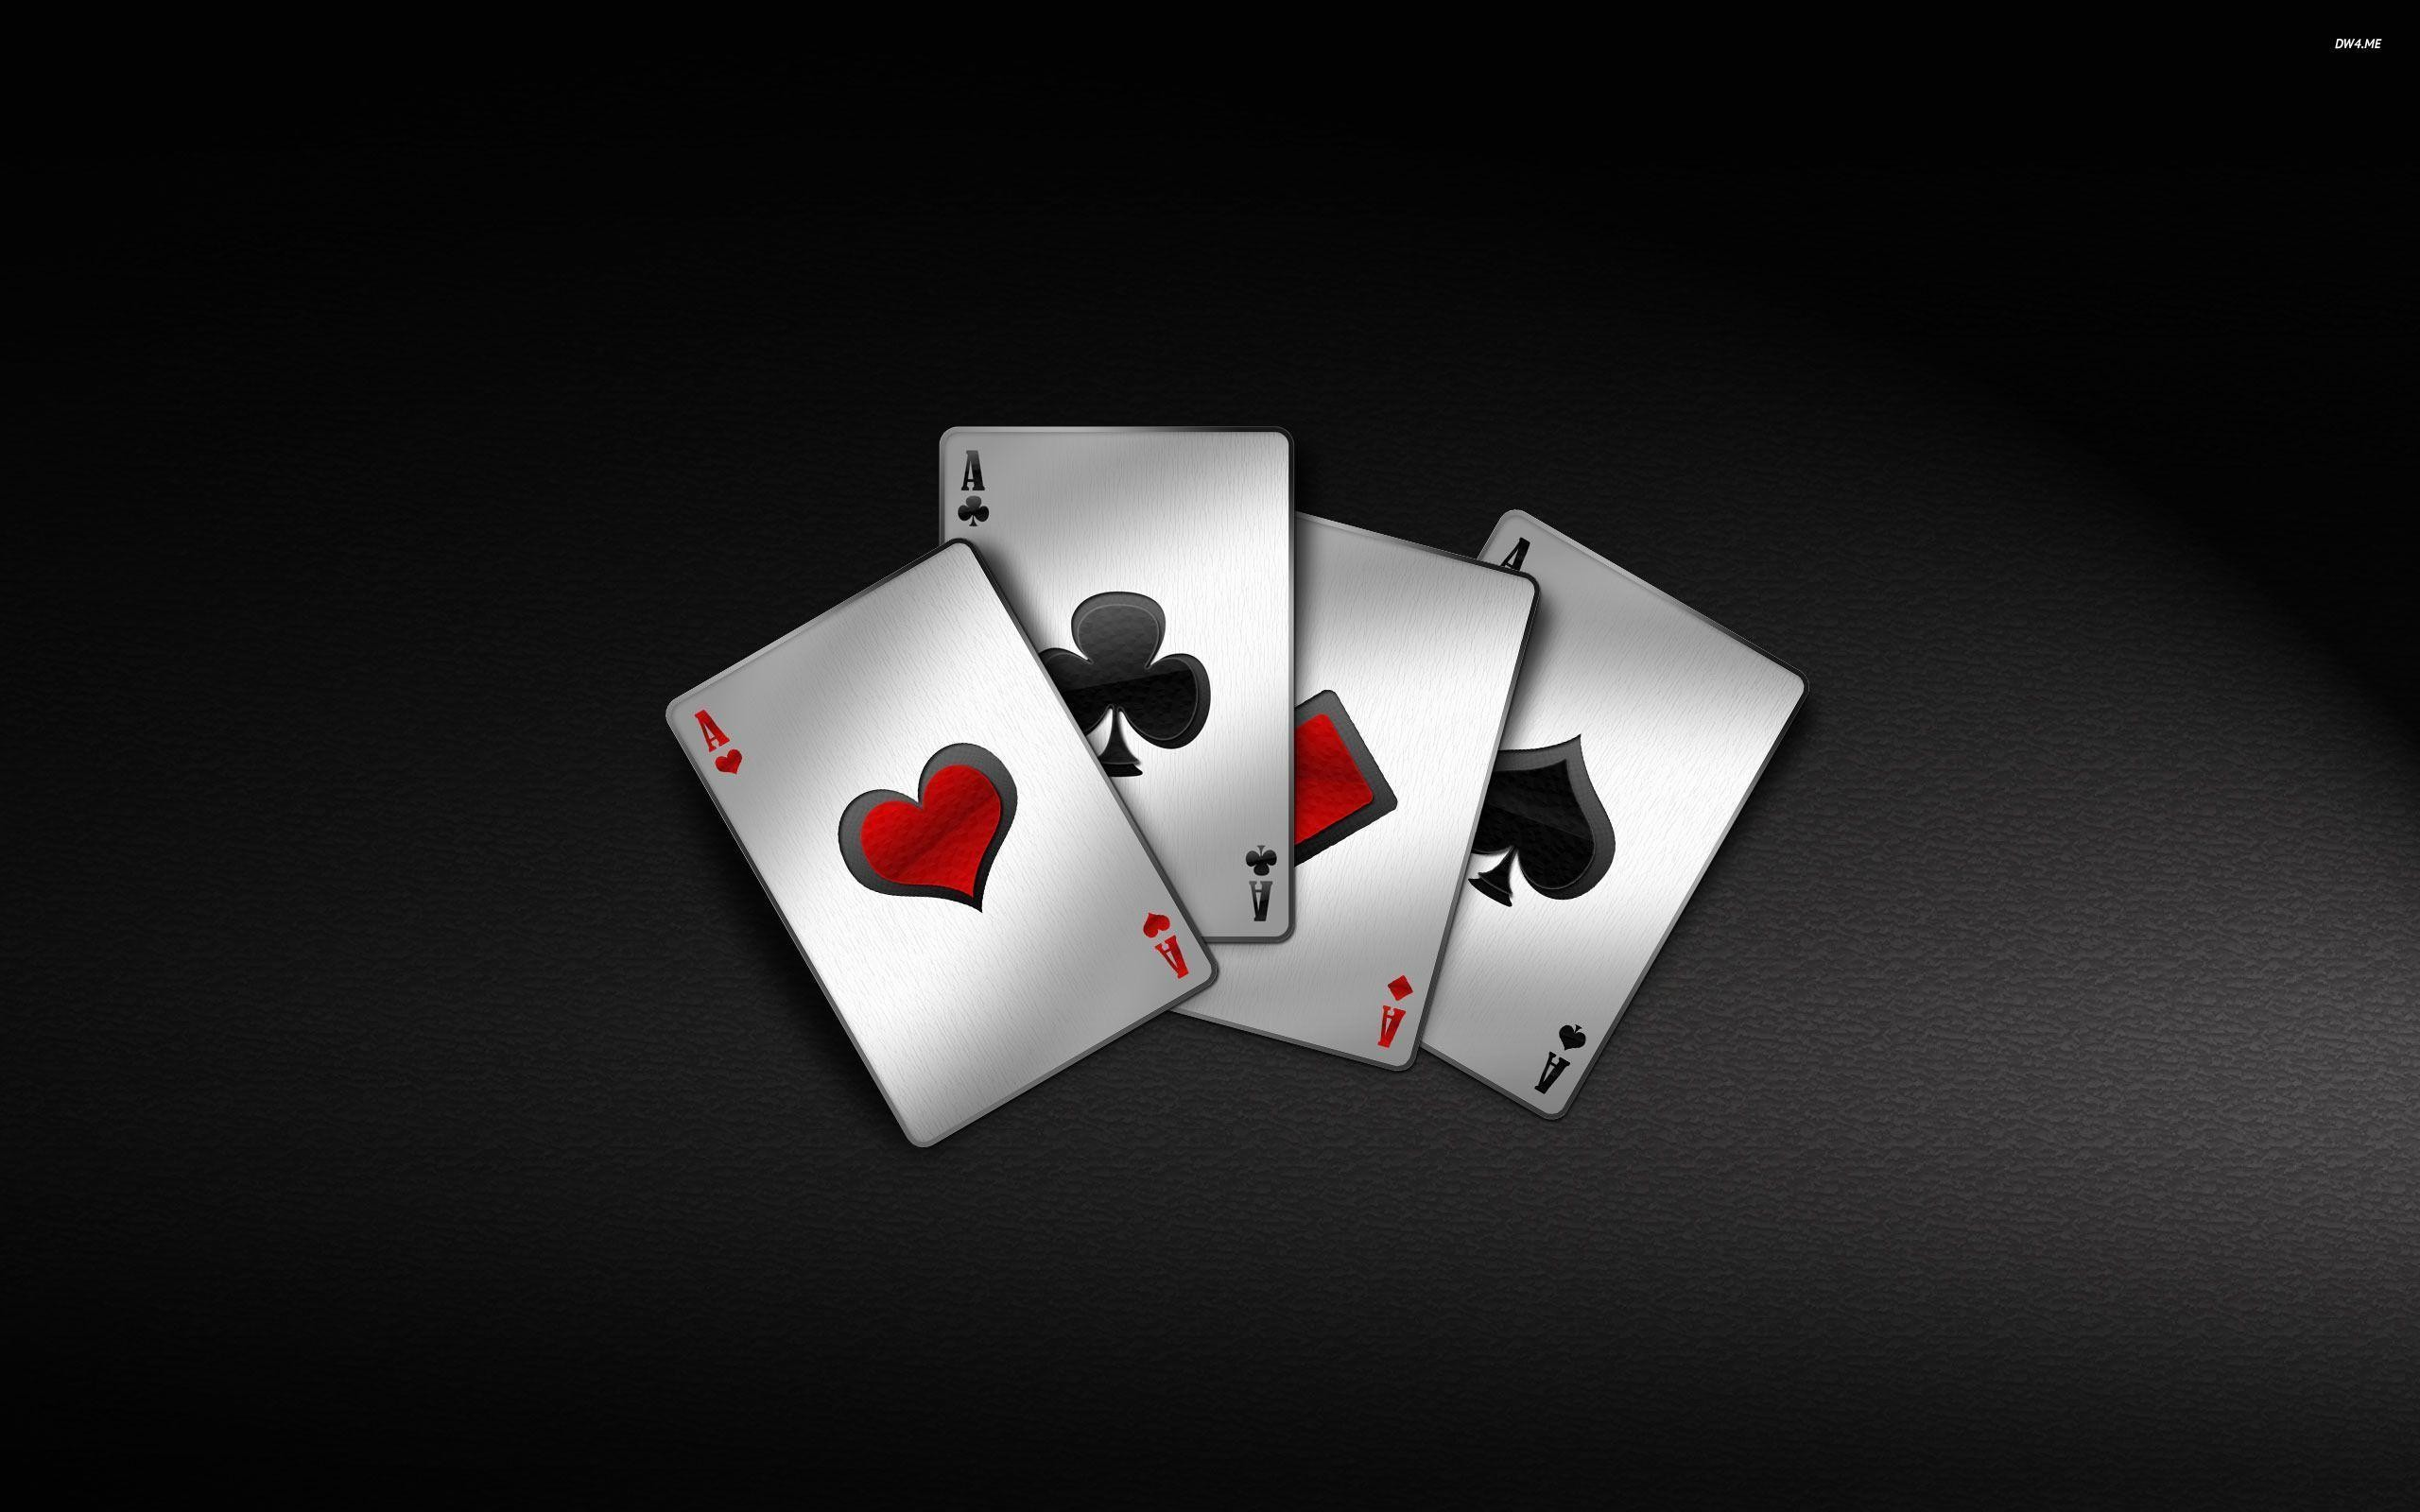 Most Well Guarded Secrets About Gambling